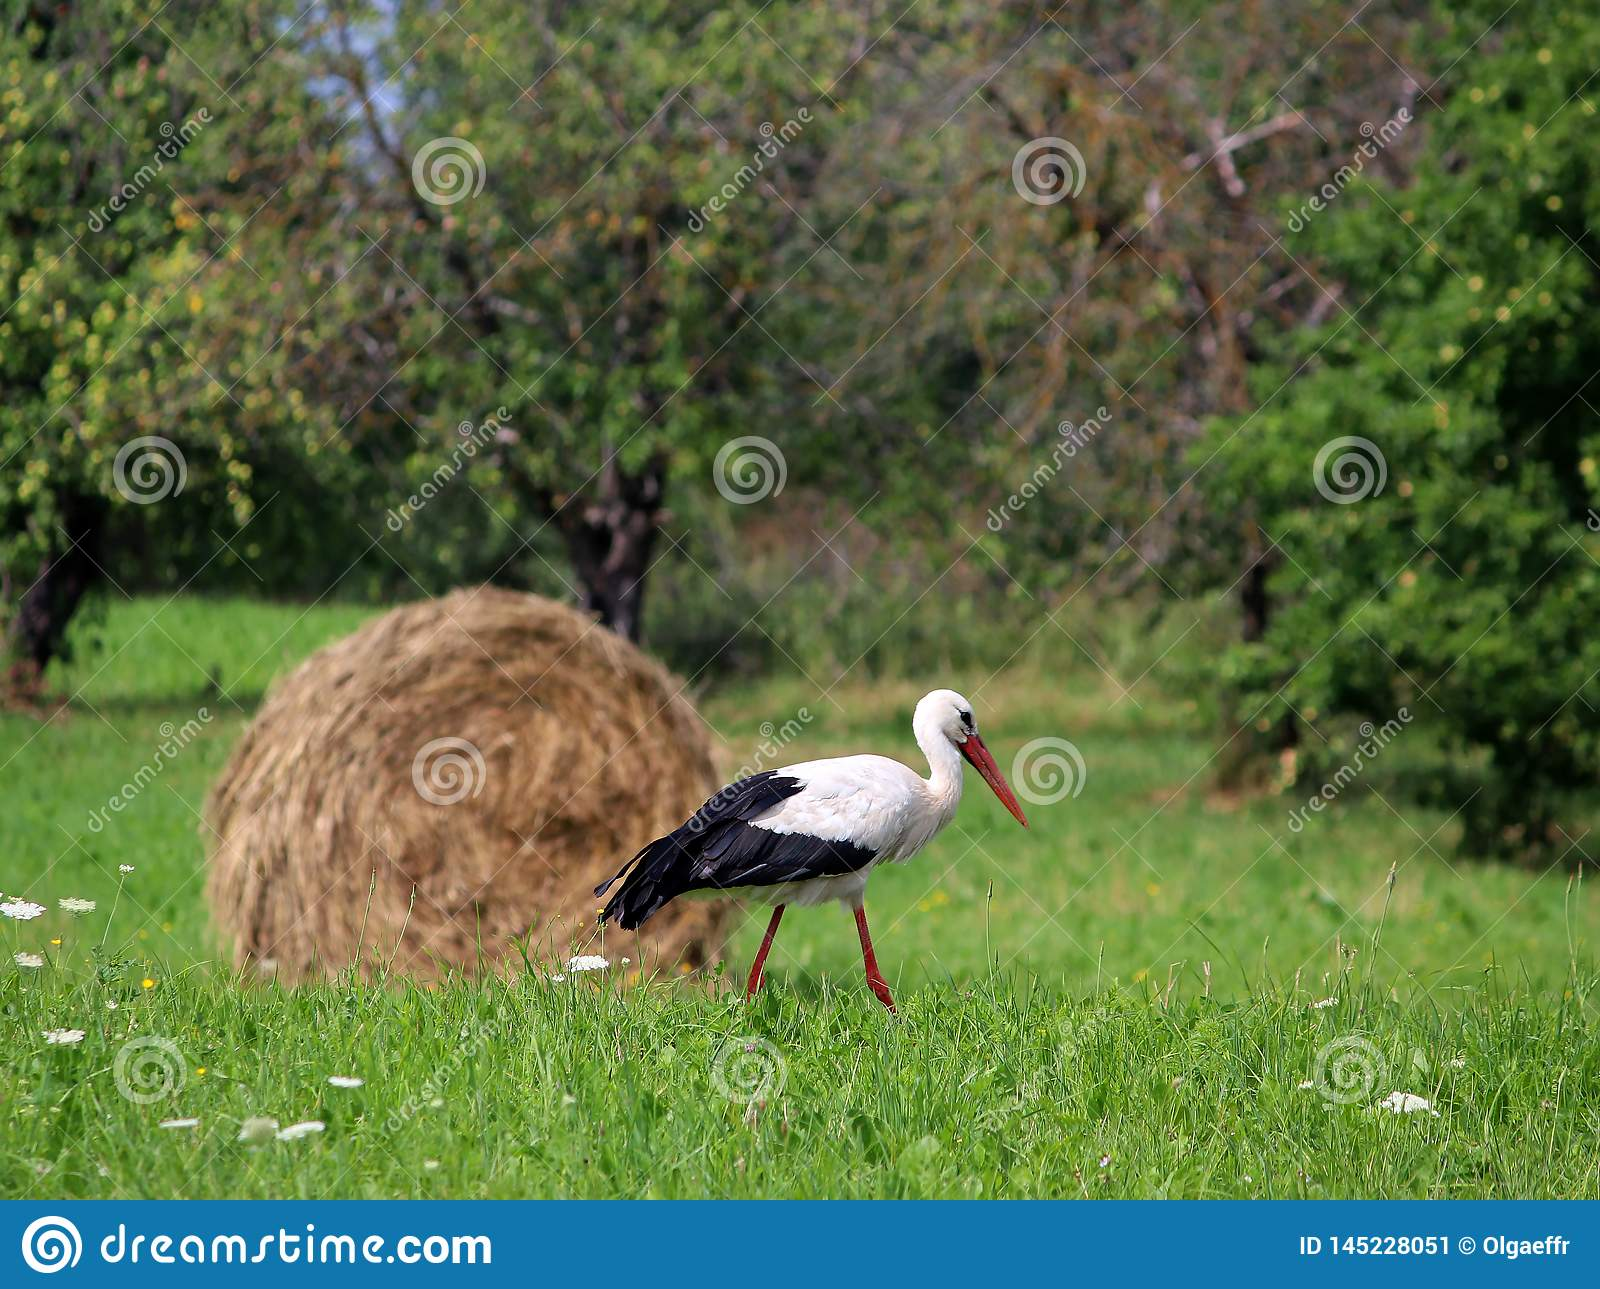 A stork and a haystack. Village. Daylight. Summer photography.